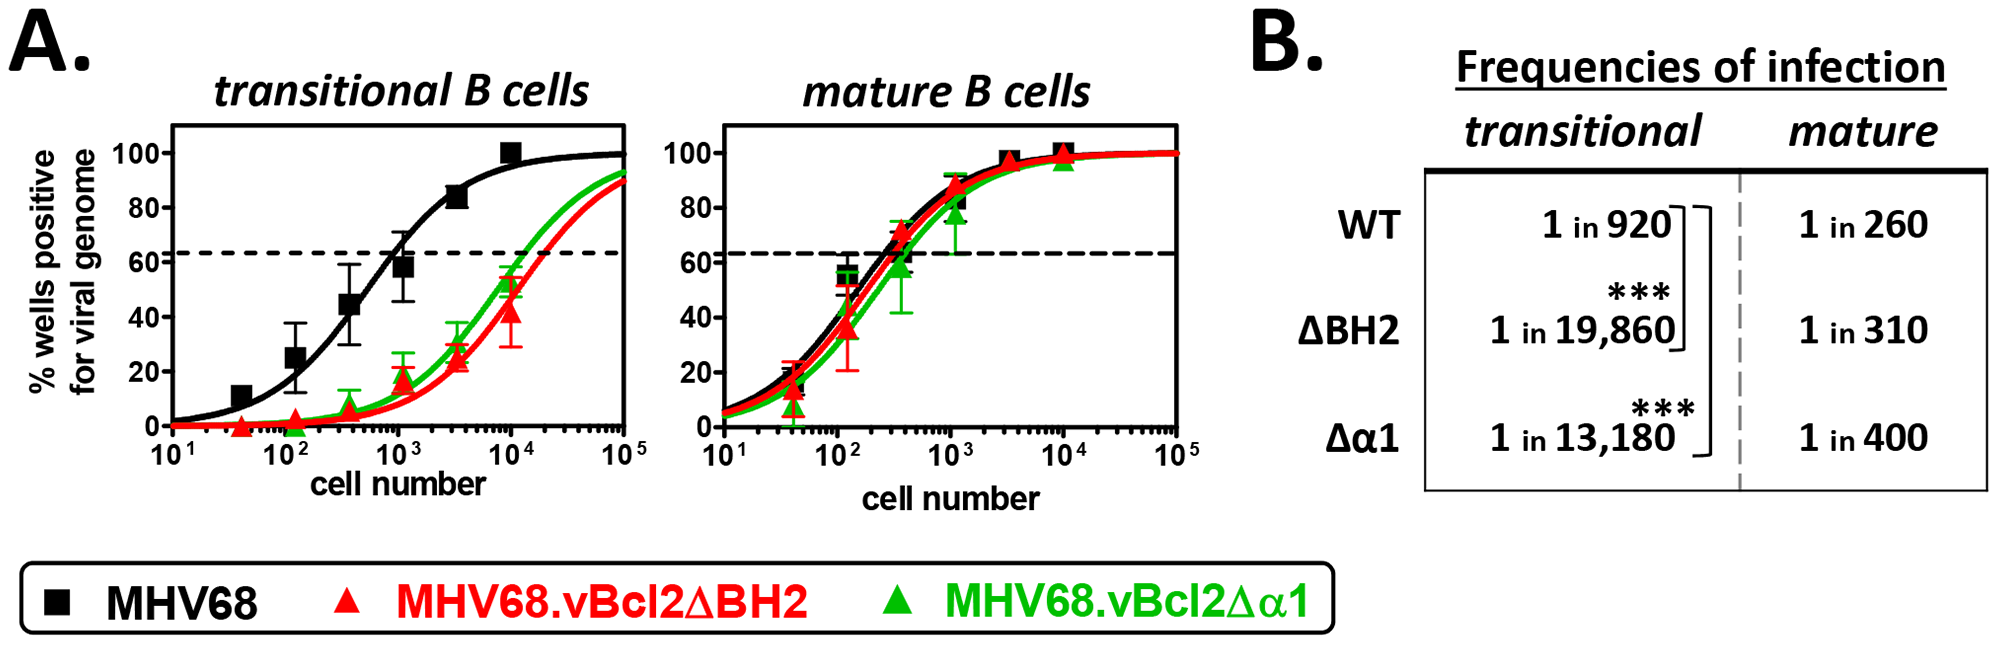 Both BH2 and α1 domains of vBcl-2 are required for efficient infection of transitional B cells.